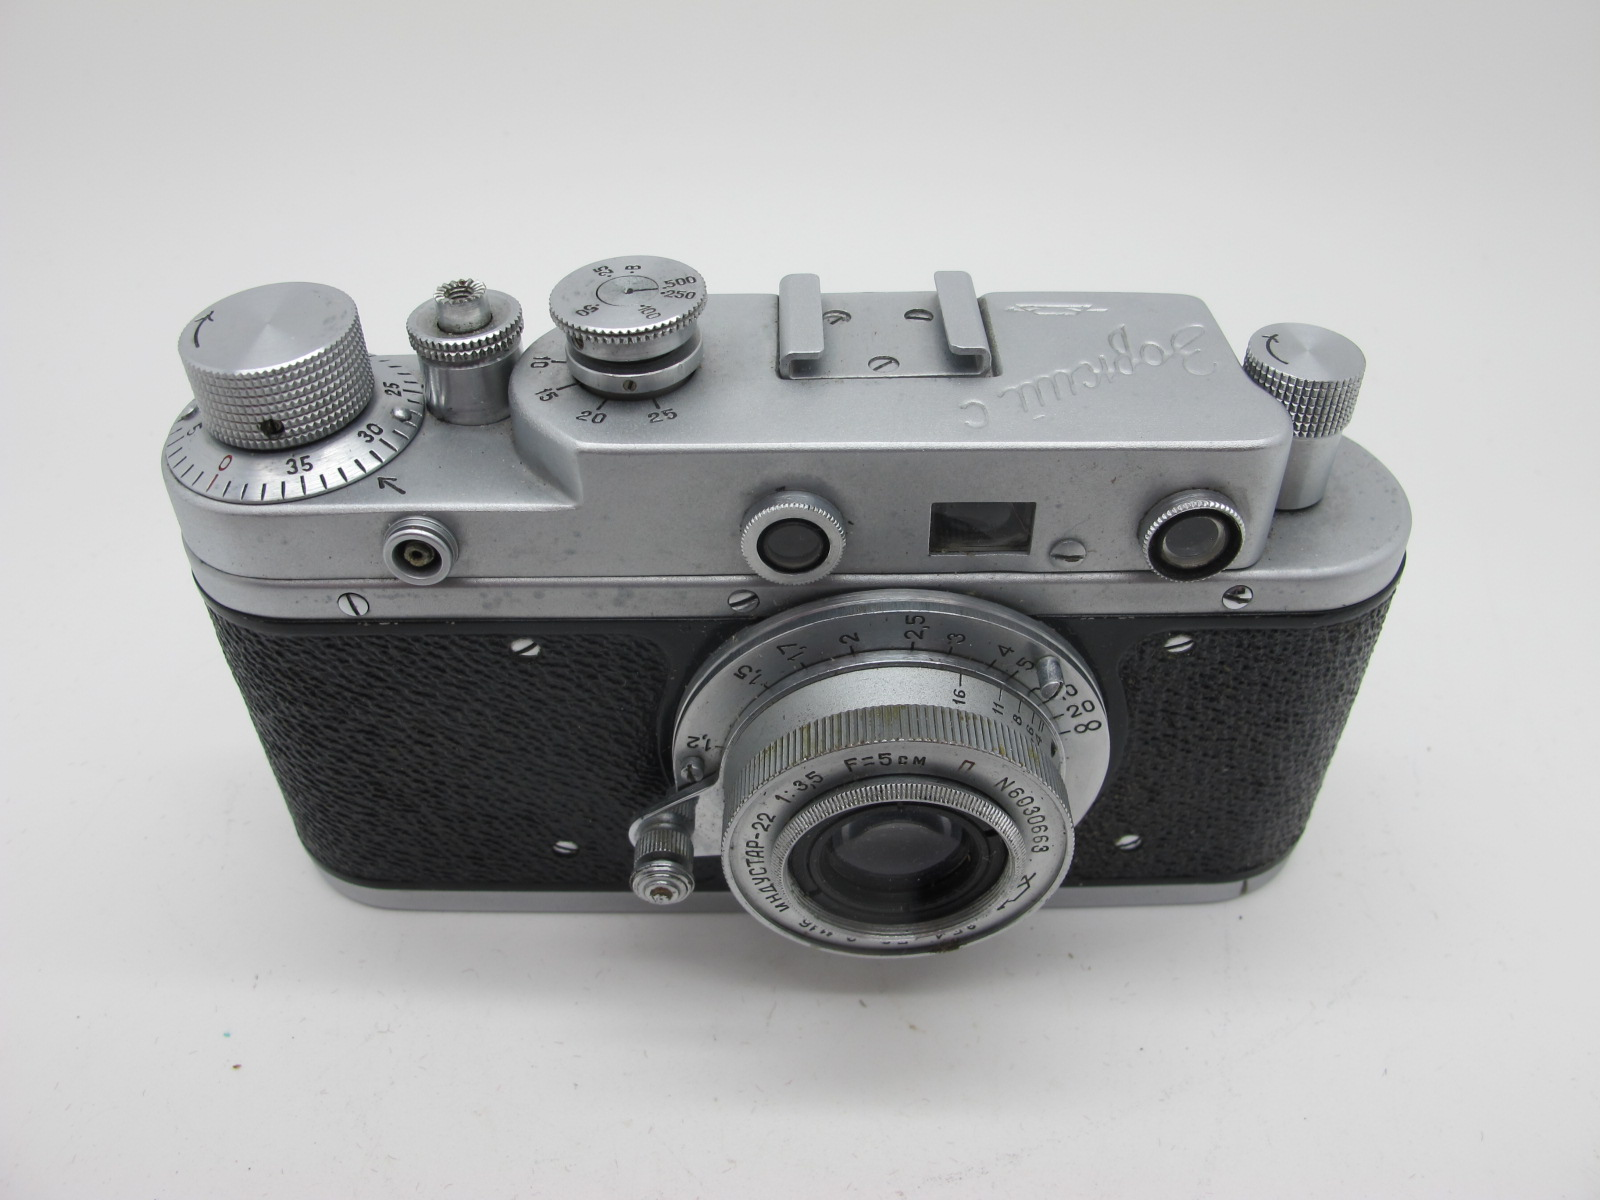 Saraber Goslar Finetta 88, Edika Flex, plus two other camera's in brown leather cases. (4) - Image 8 of 13